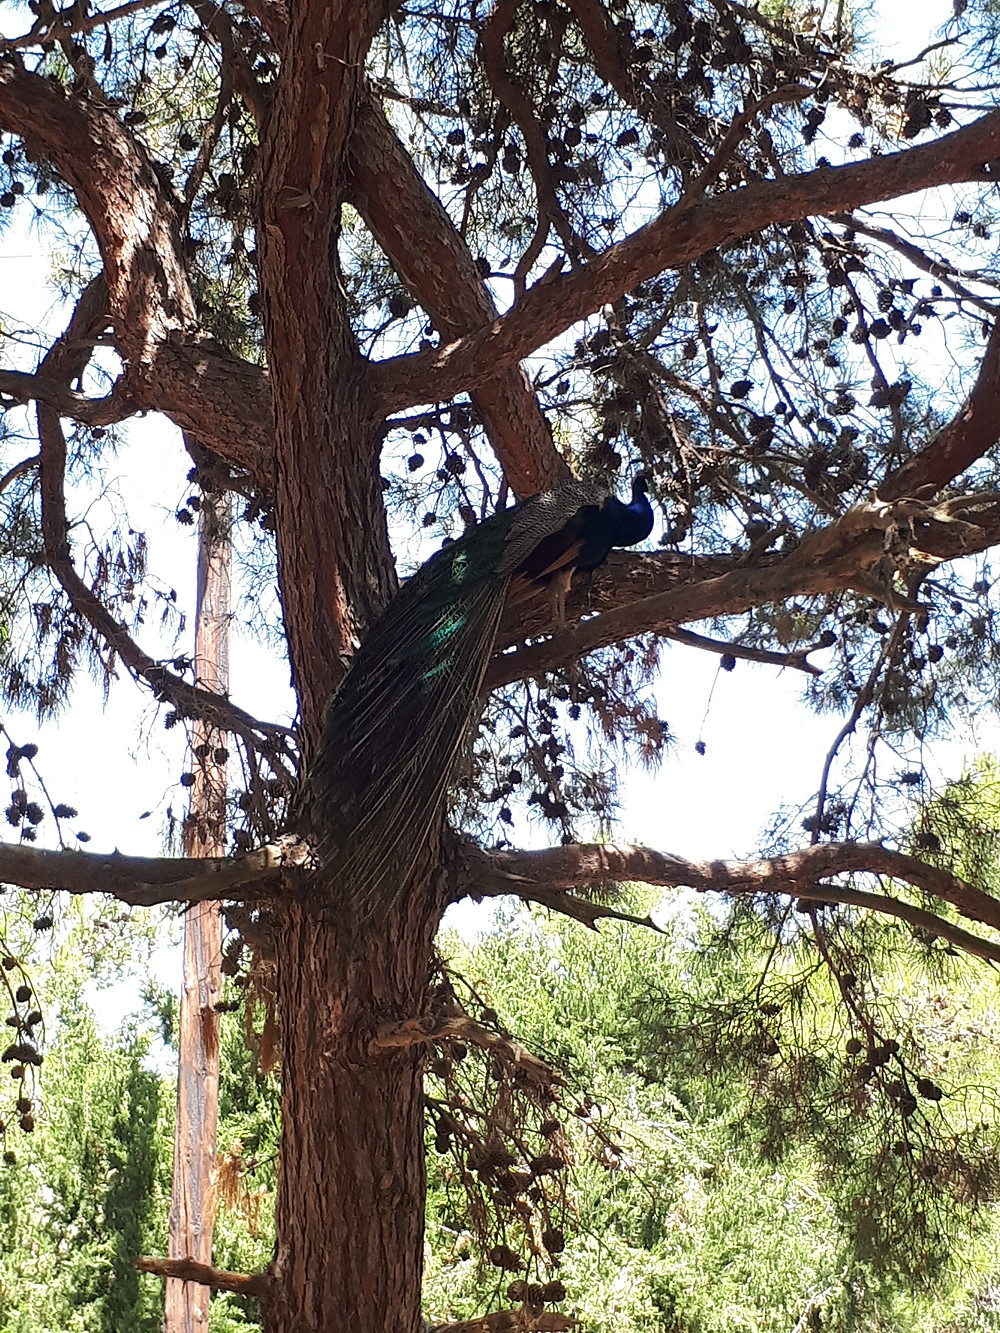 Peacock in Plaka forest